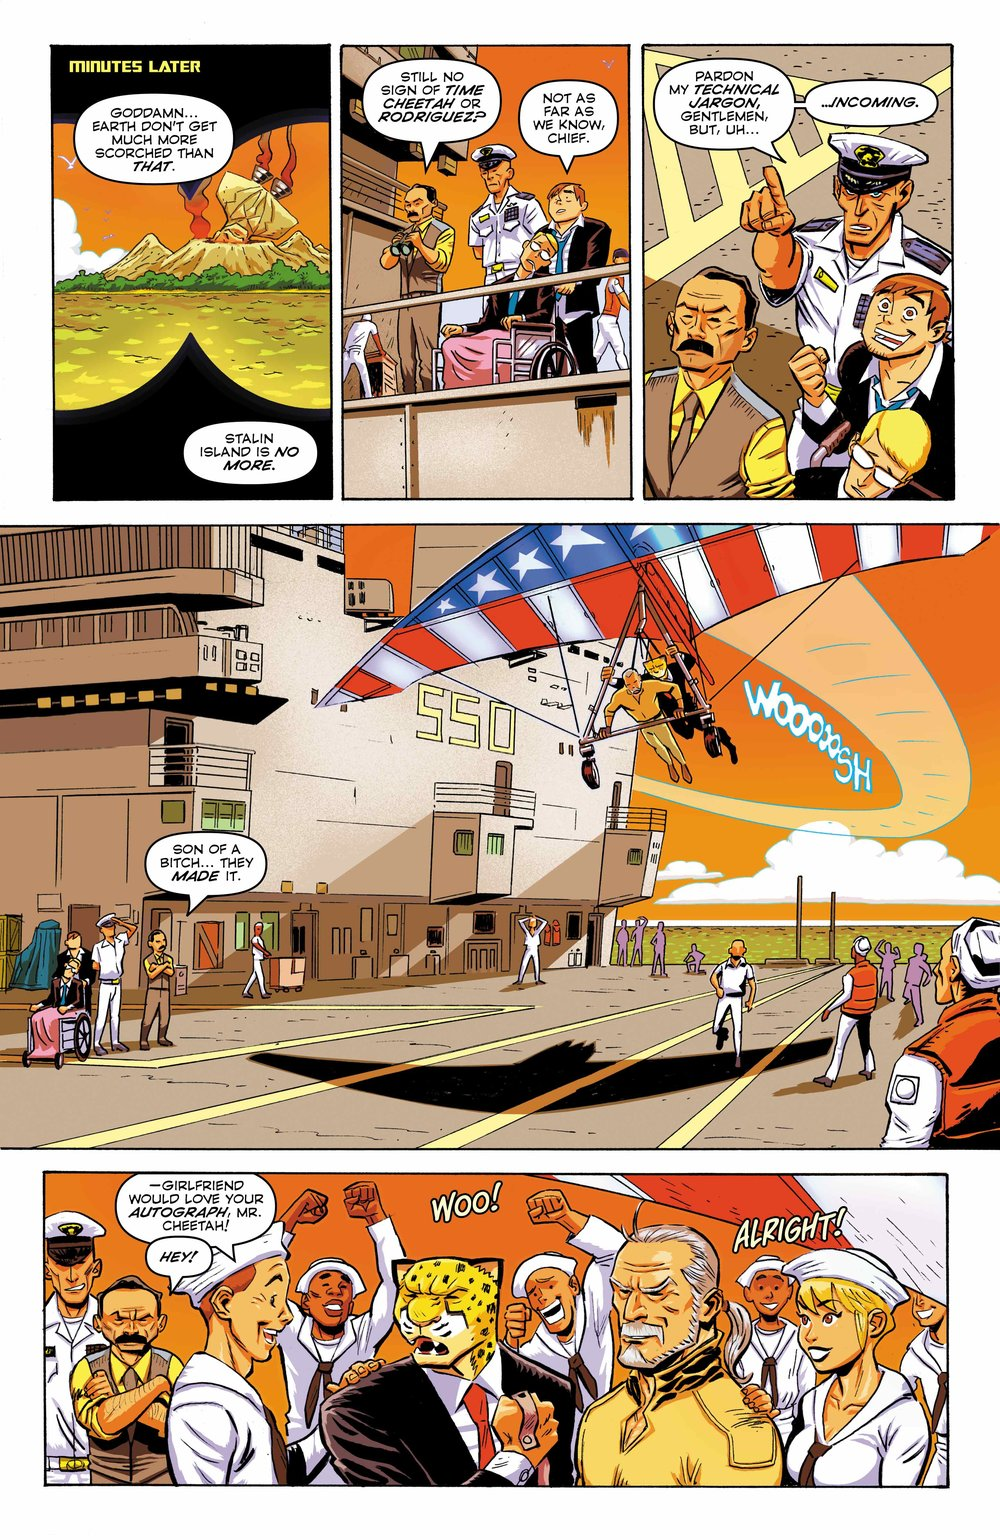 Time Cheetah - The Secret of Stalin Island Part 2 - Page 25